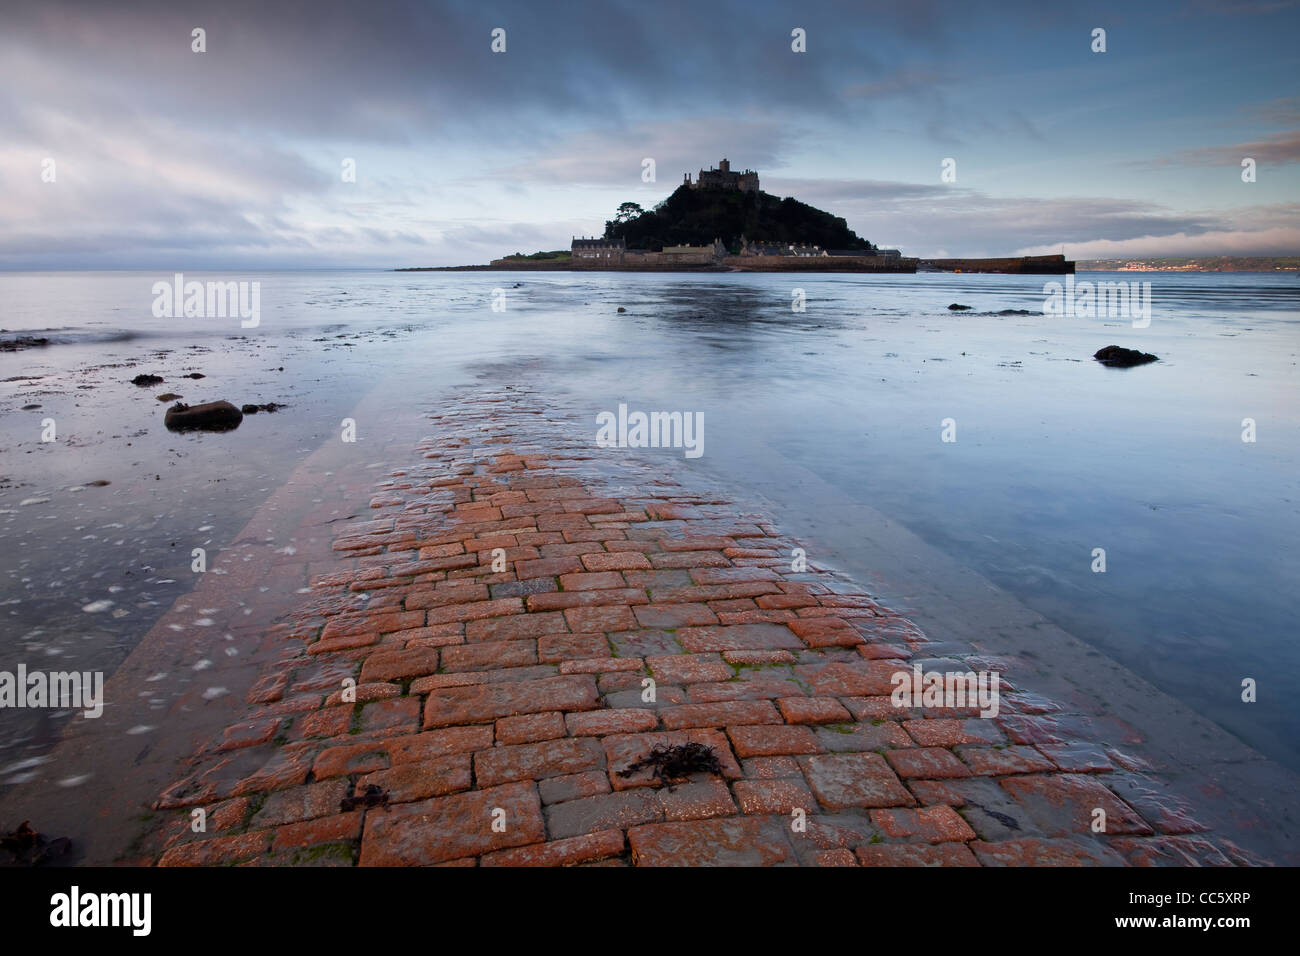 St Michael's Mount and the causeway in Cornwall, England, UK Stock Photo